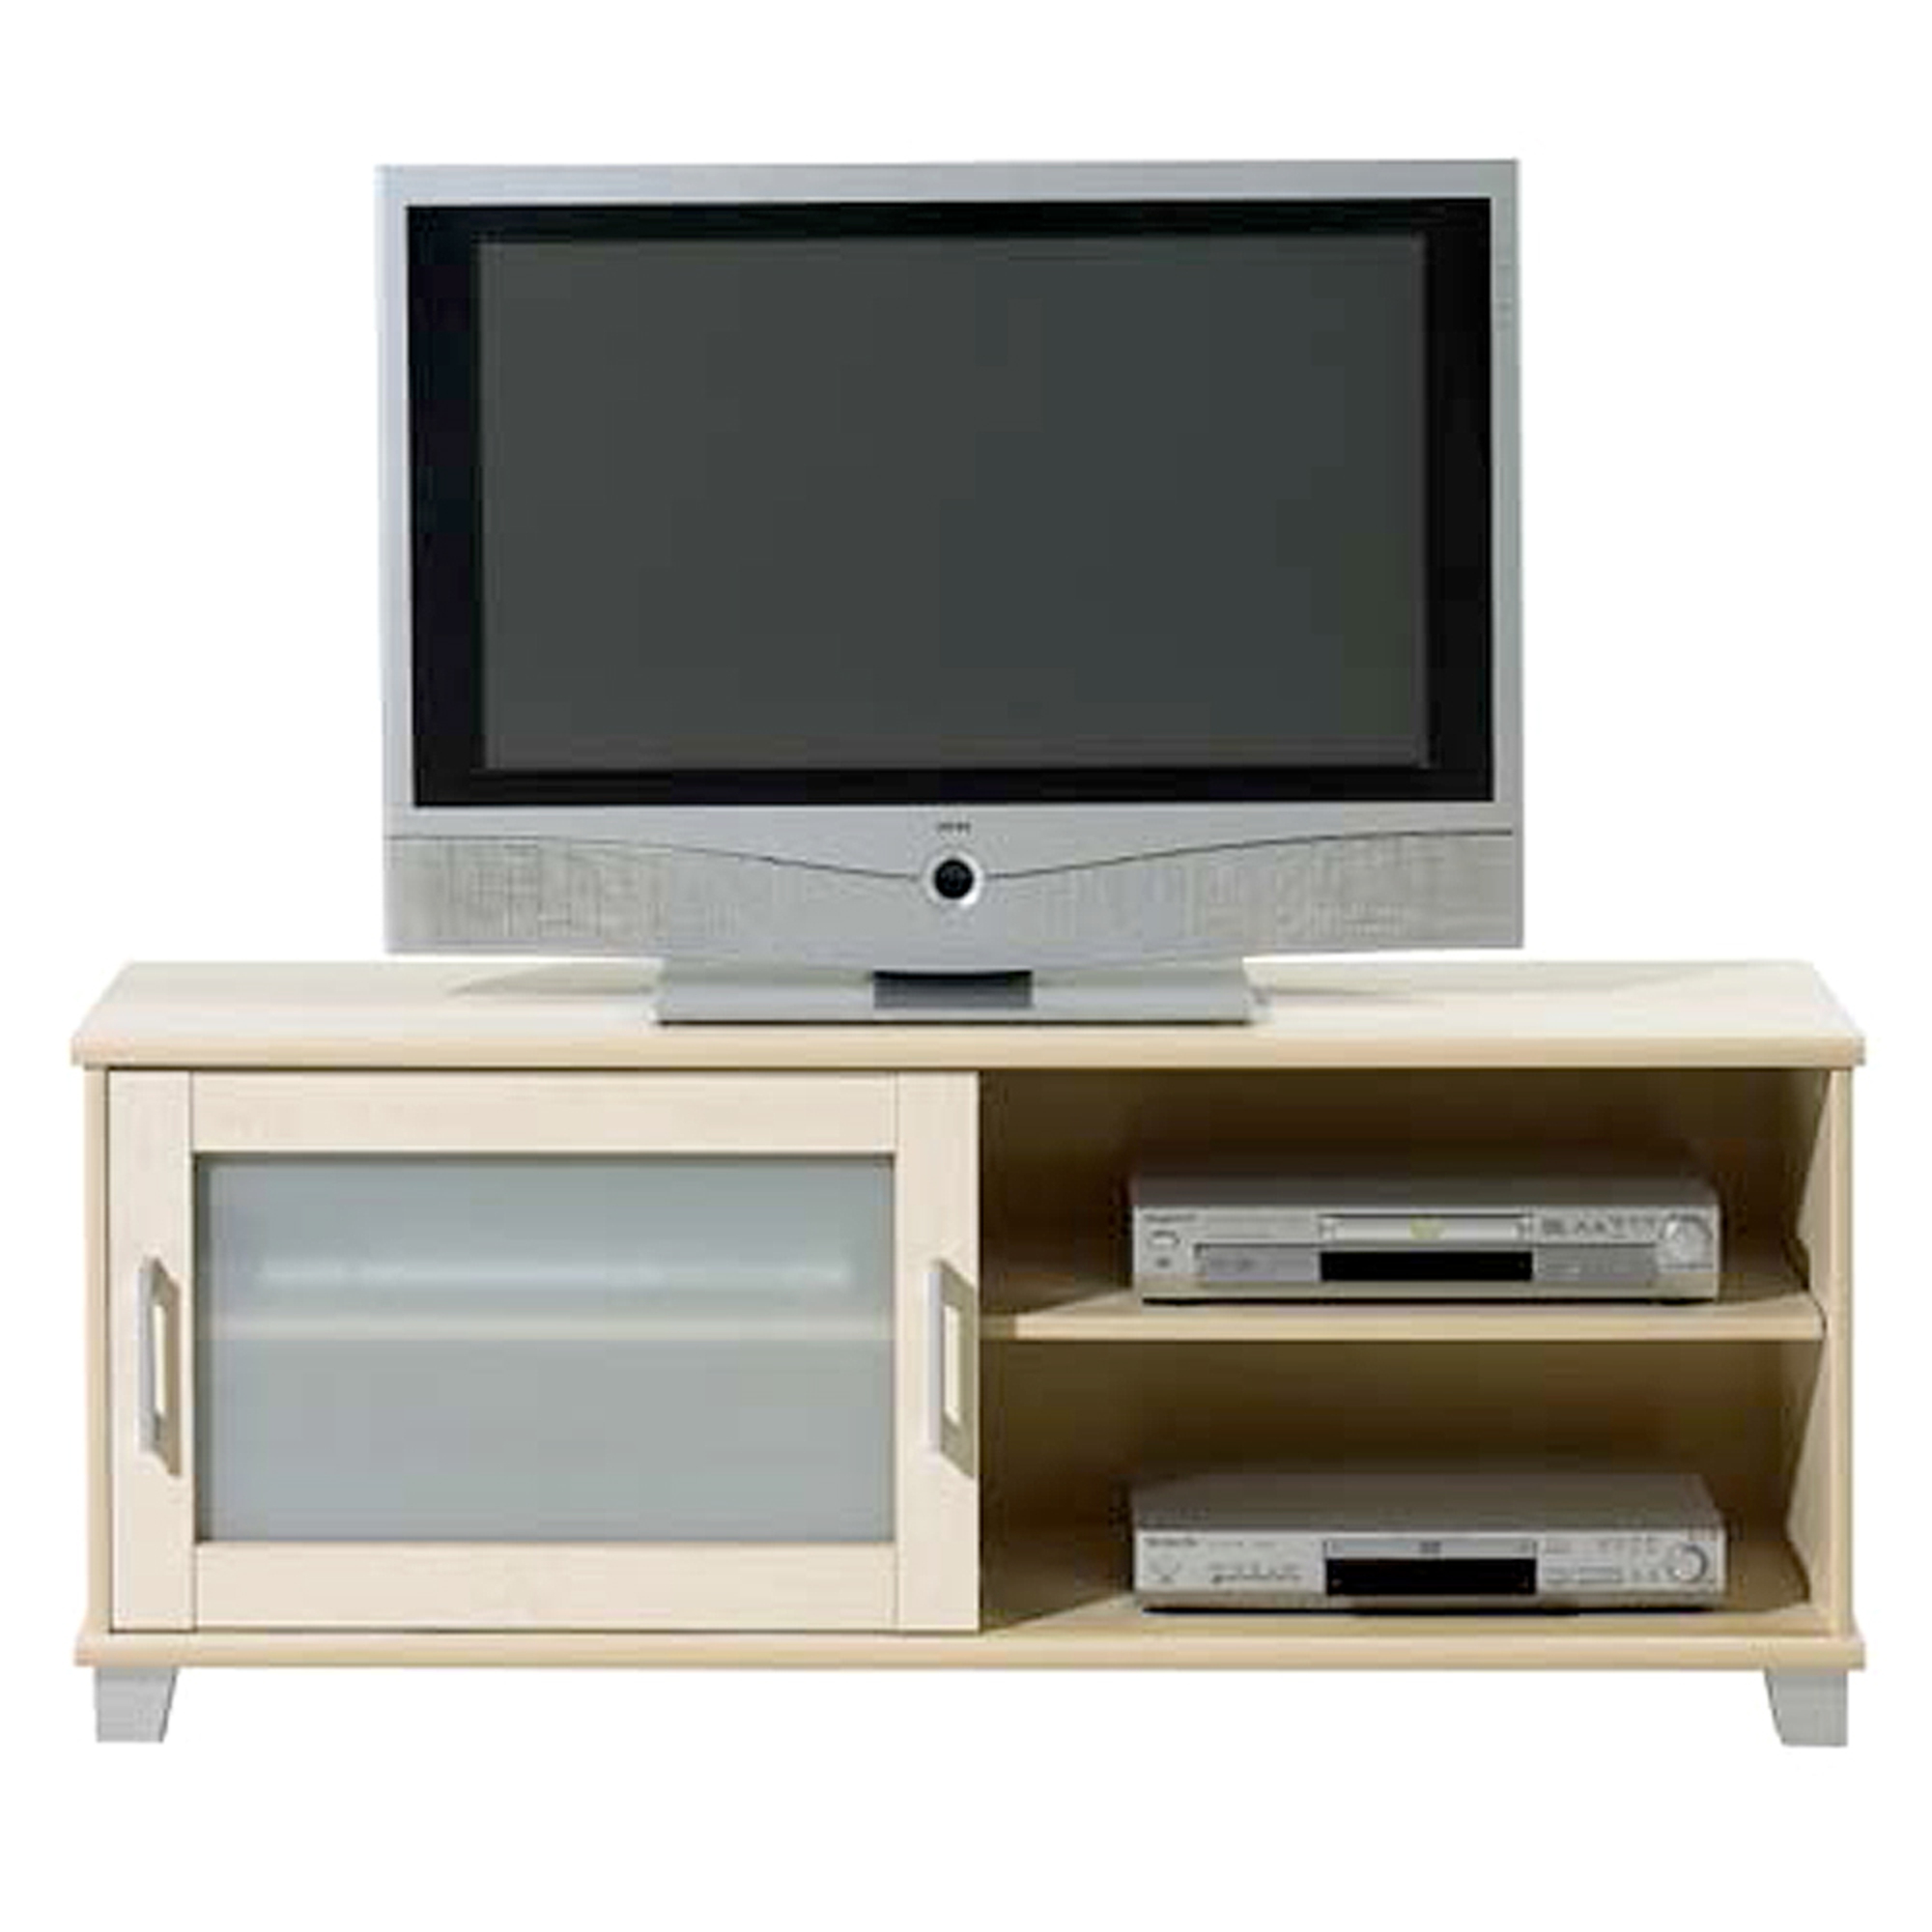 soldes meubles la maison de valerie soldes meuble tv kkz. Black Bedroom Furniture Sets. Home Design Ideas